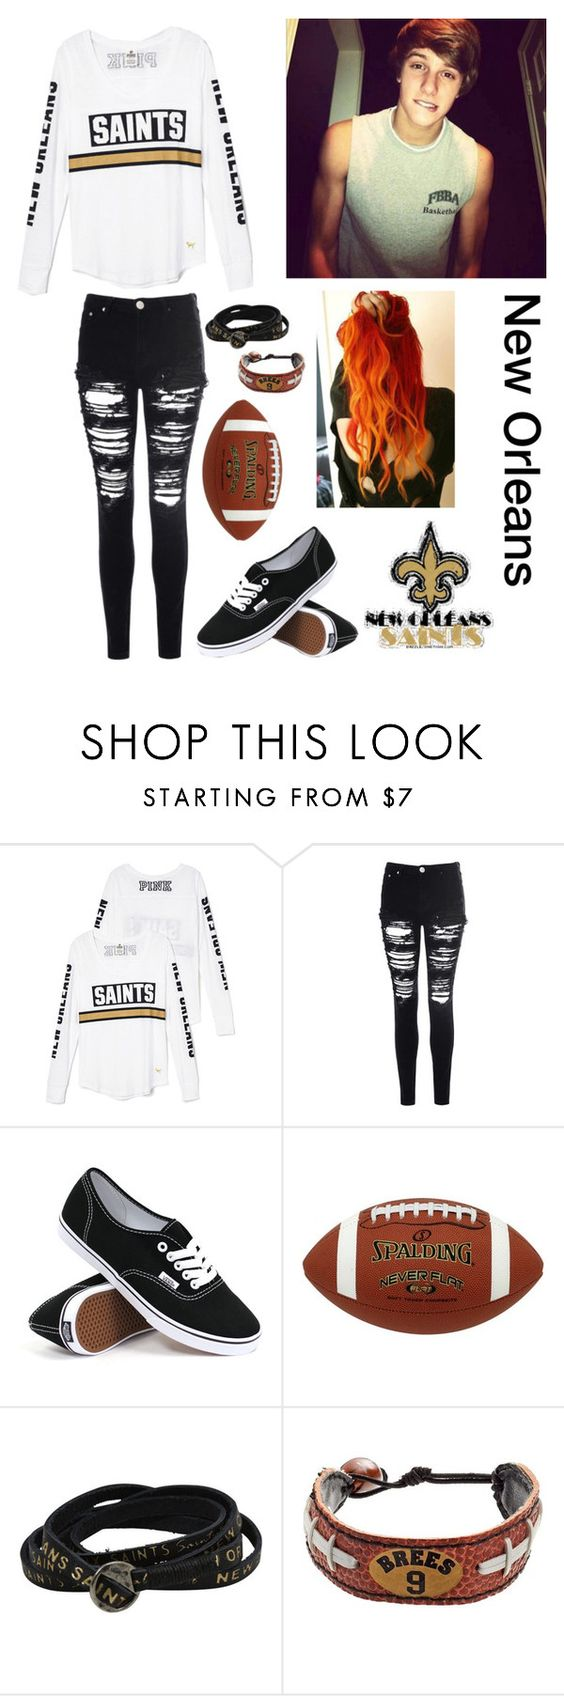 """""""Saints football game"""" by ash-irwin-1994 ❤ liked on Polyvore featuring Glamorous, Vans, Spalding and GameWear"""